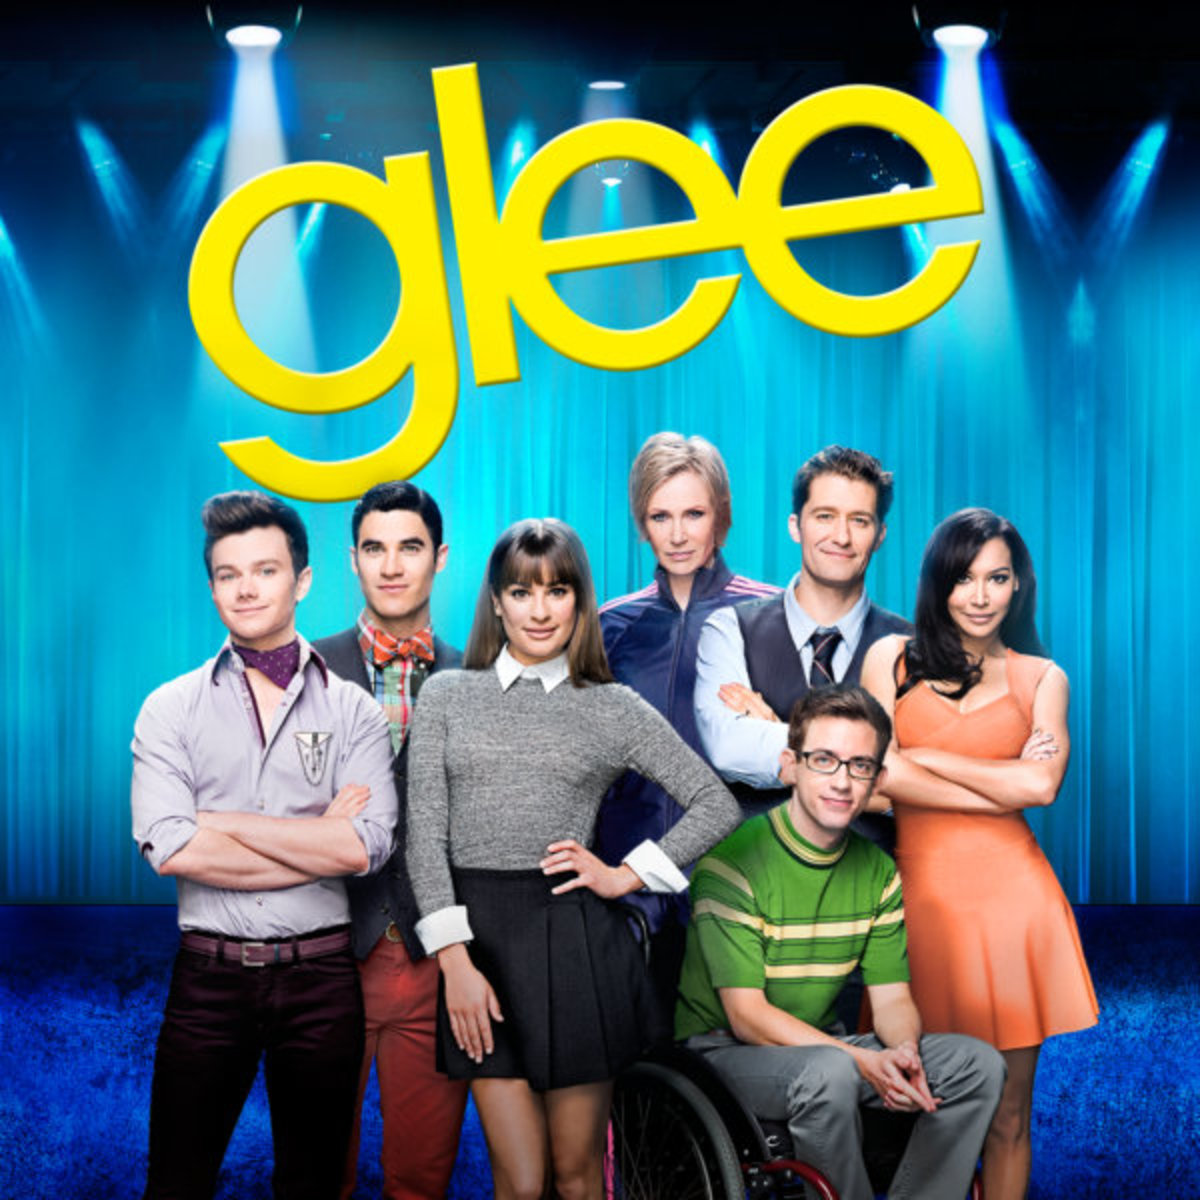 Glee TV series is one of the most famous musical TV series of all times, and even one of the most loved among teens.